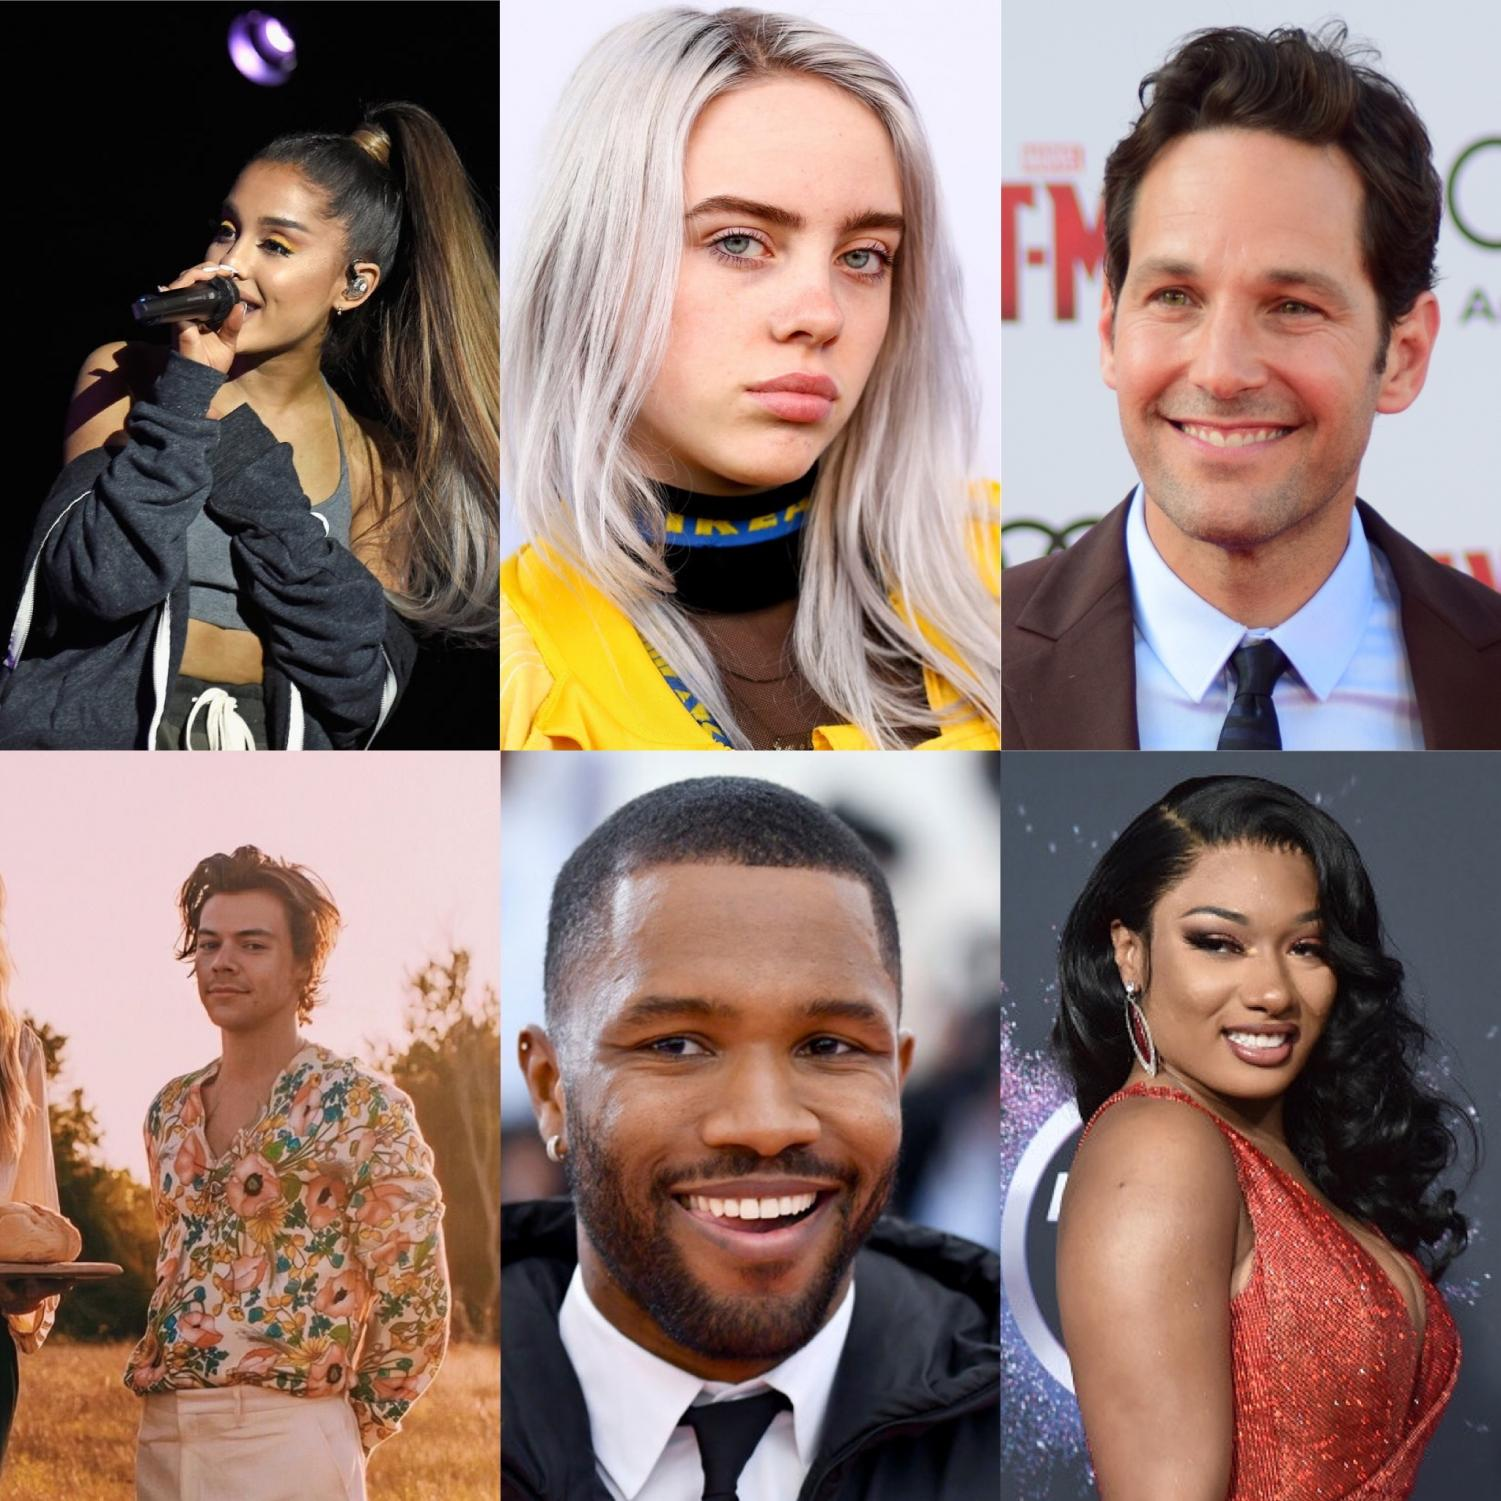 Celebrity preferences can be very telling into what kind of a person you are.